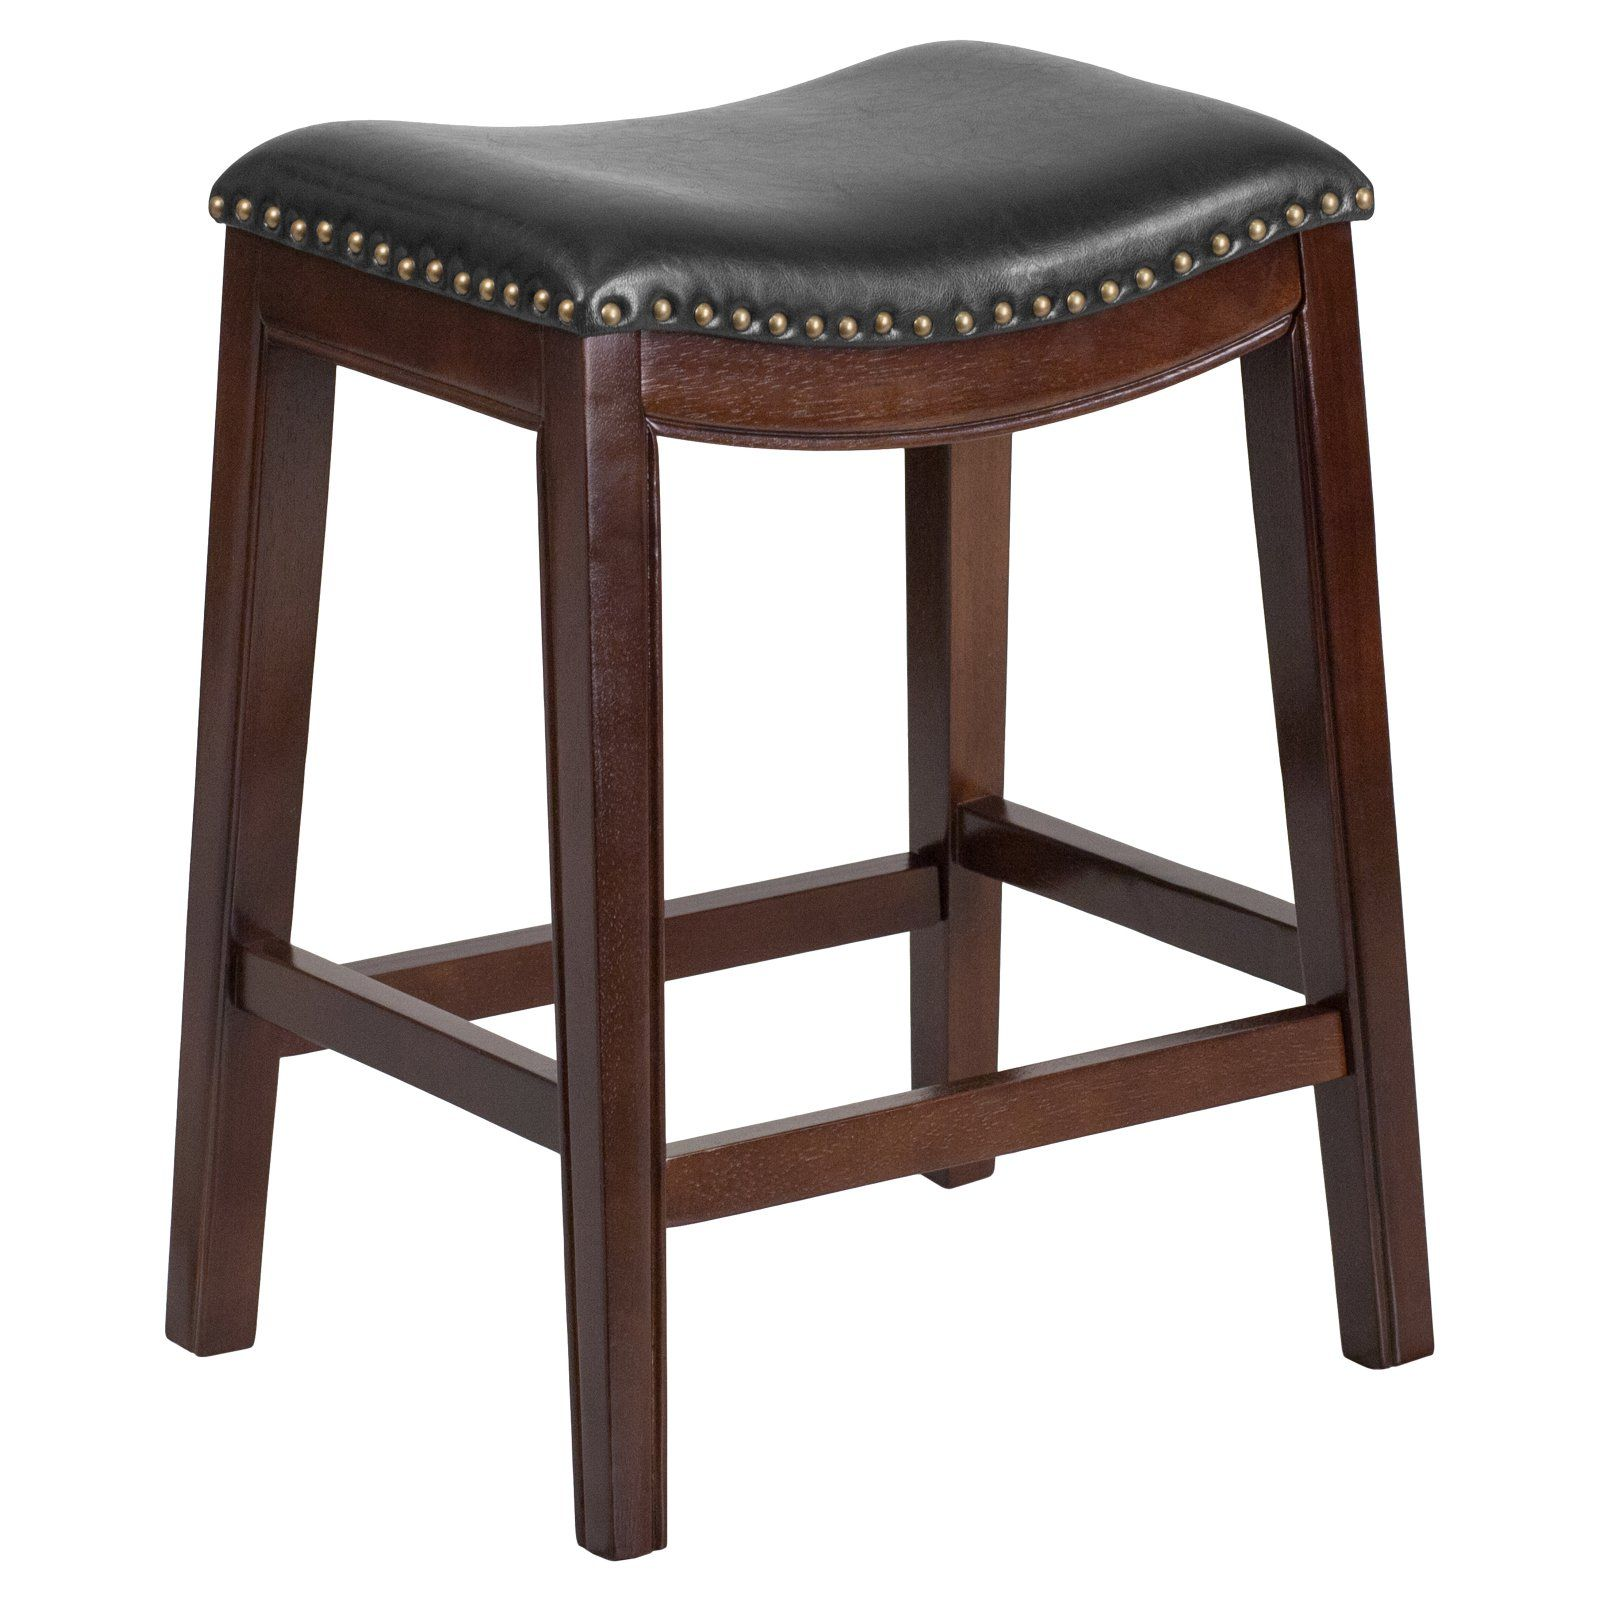 Flash furniture 26 in backless wood counter height stool with black leather saddle seat